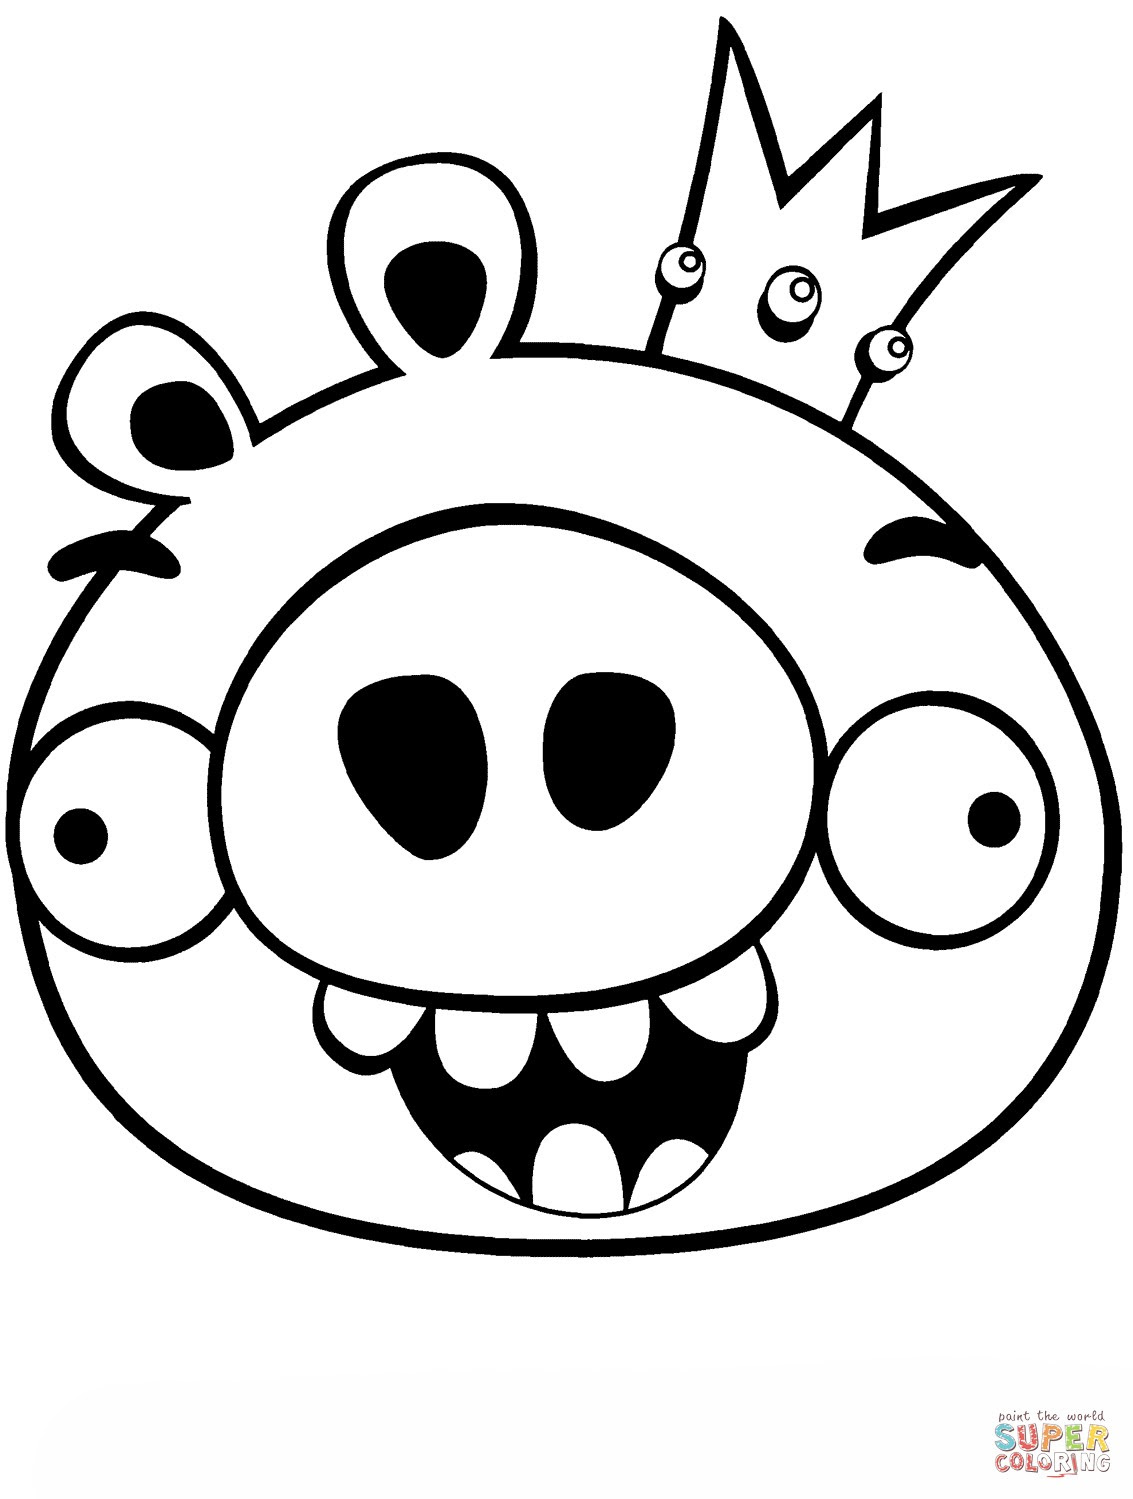 96 Angry Birds Bad Piggies Coloring Pages Images & Pictures In HD